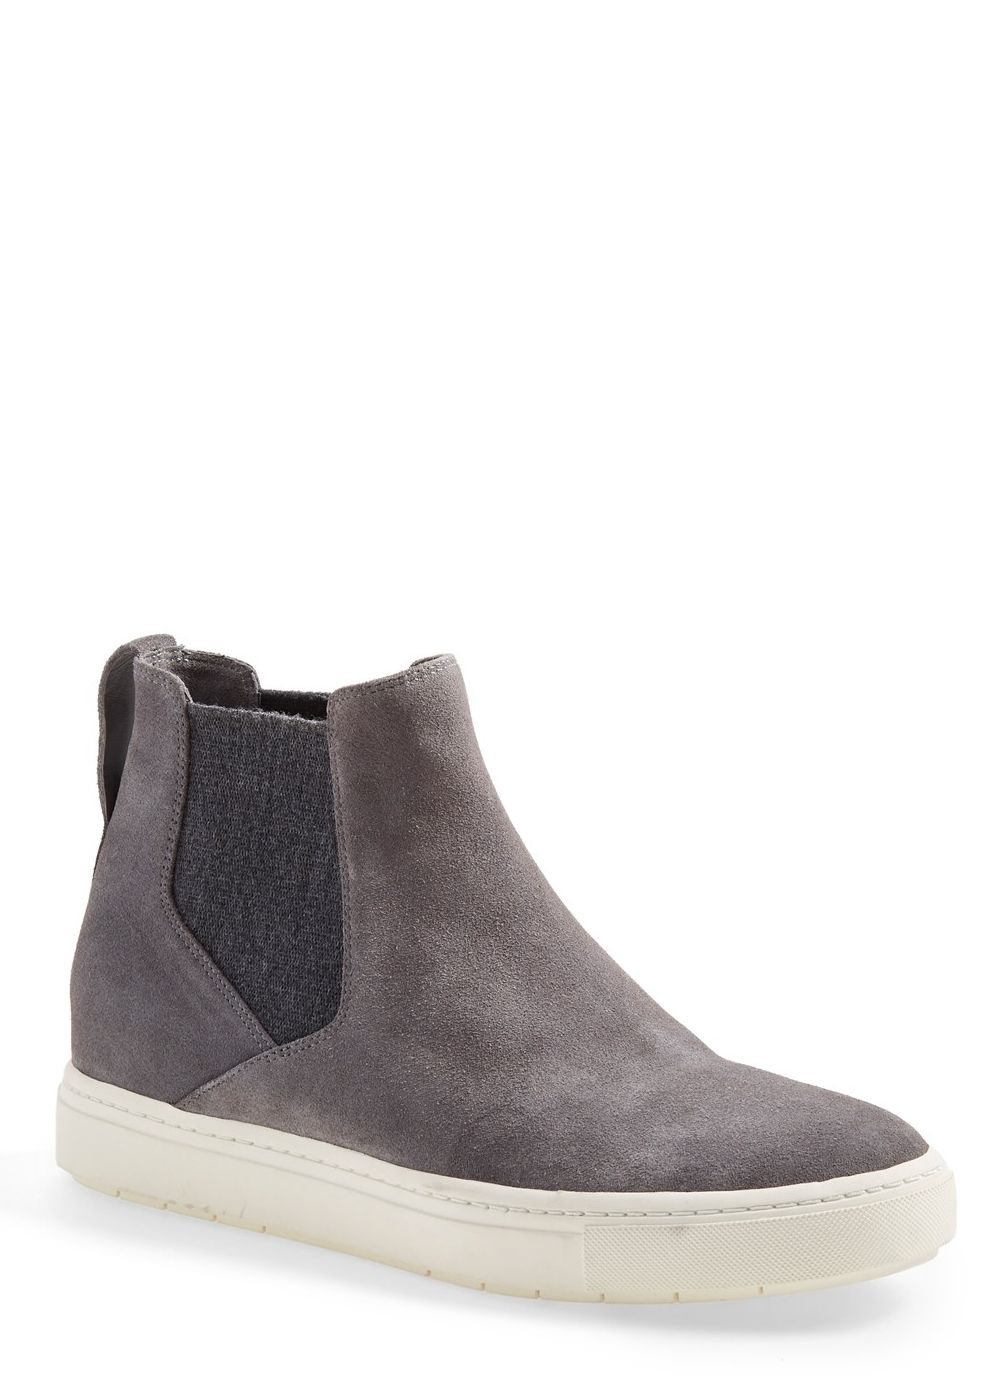 6b3dfc2275a These suede high-top sneakers are totally sport-chic